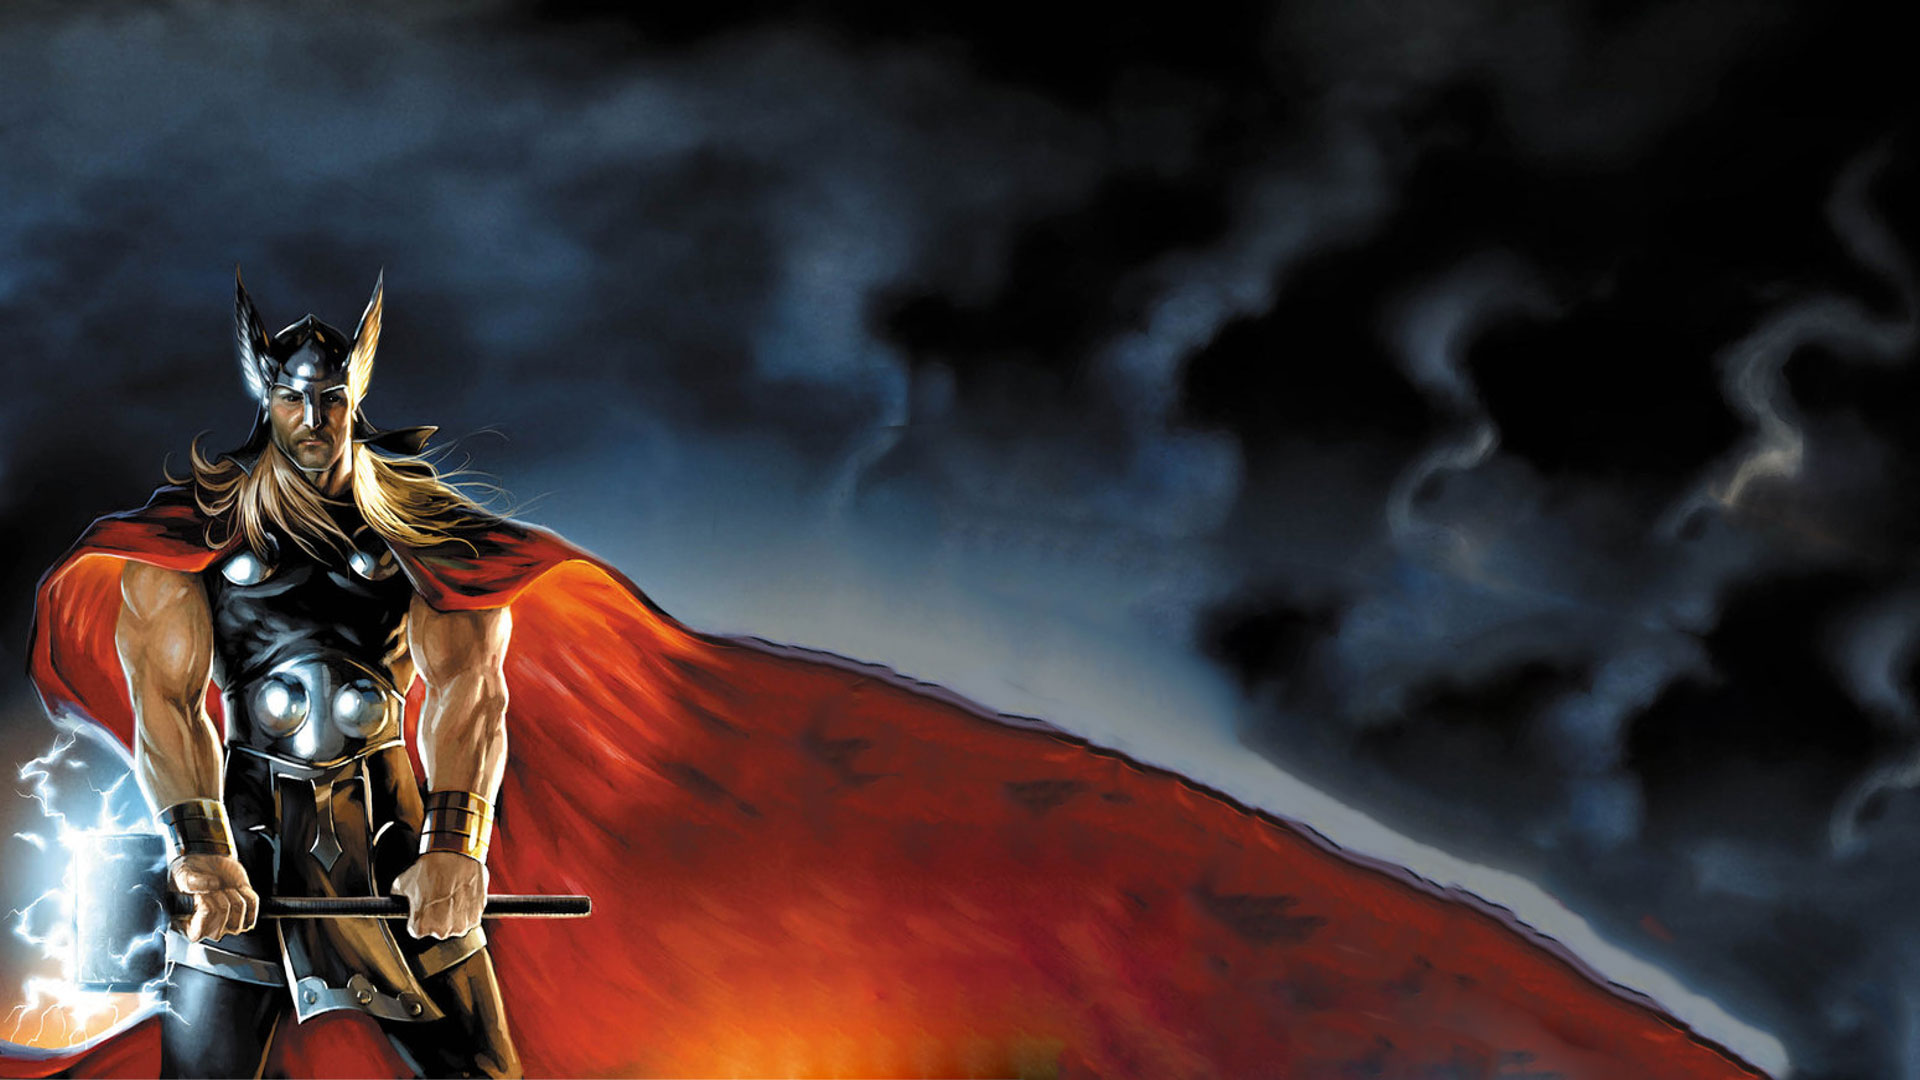 thor comics wallpaper comic - photo #21